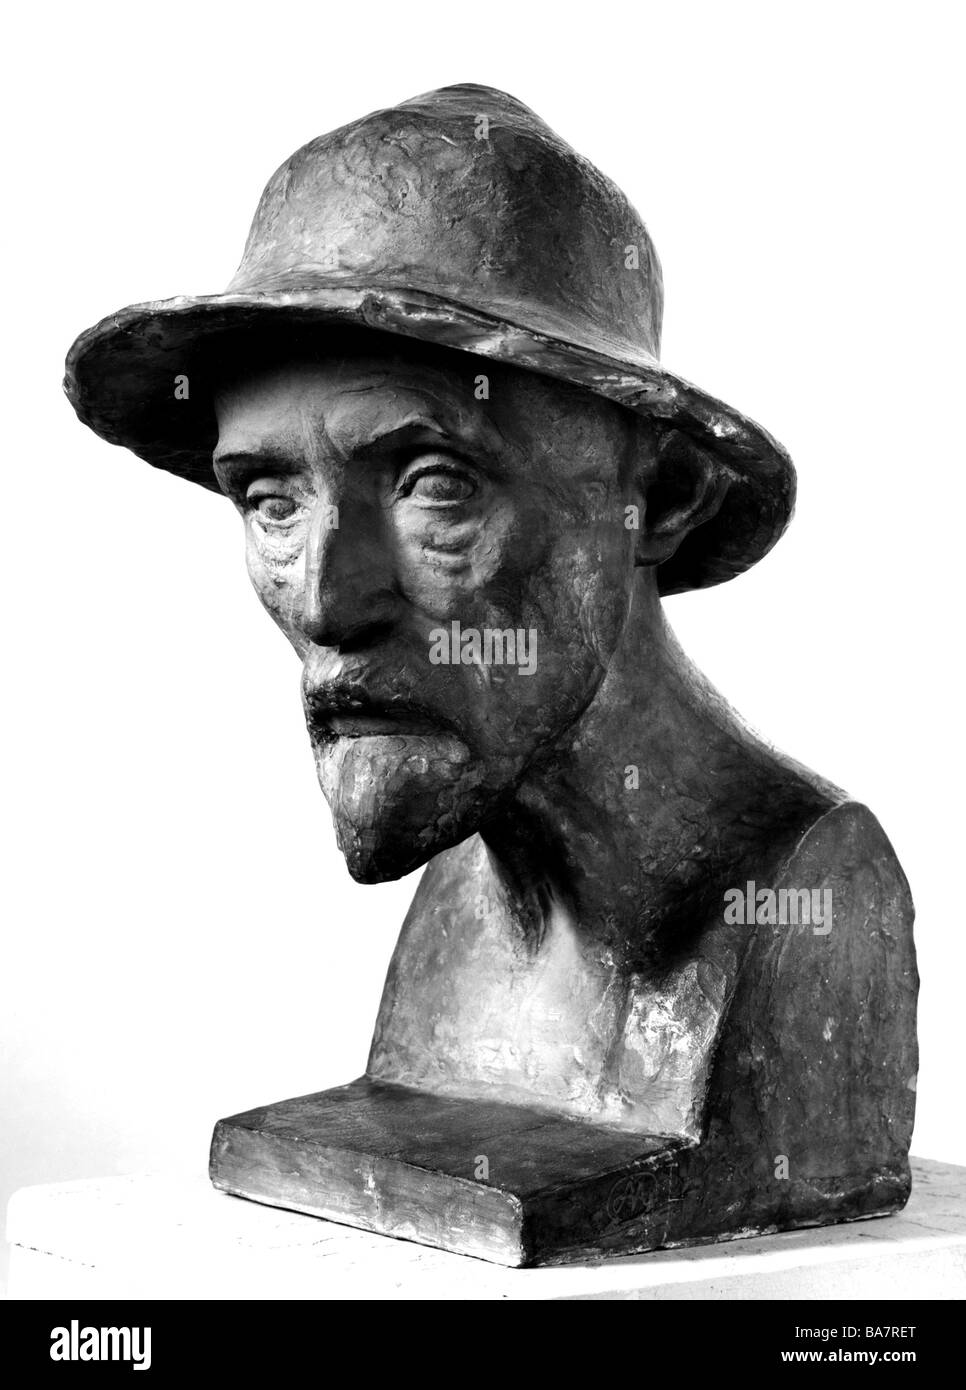 Renoir, Pierre-Auguste 25.2. 1841 - 3.12.1919, French painter, portrait, bust by Aristide Maillol, 1907, Additional - Stock Image